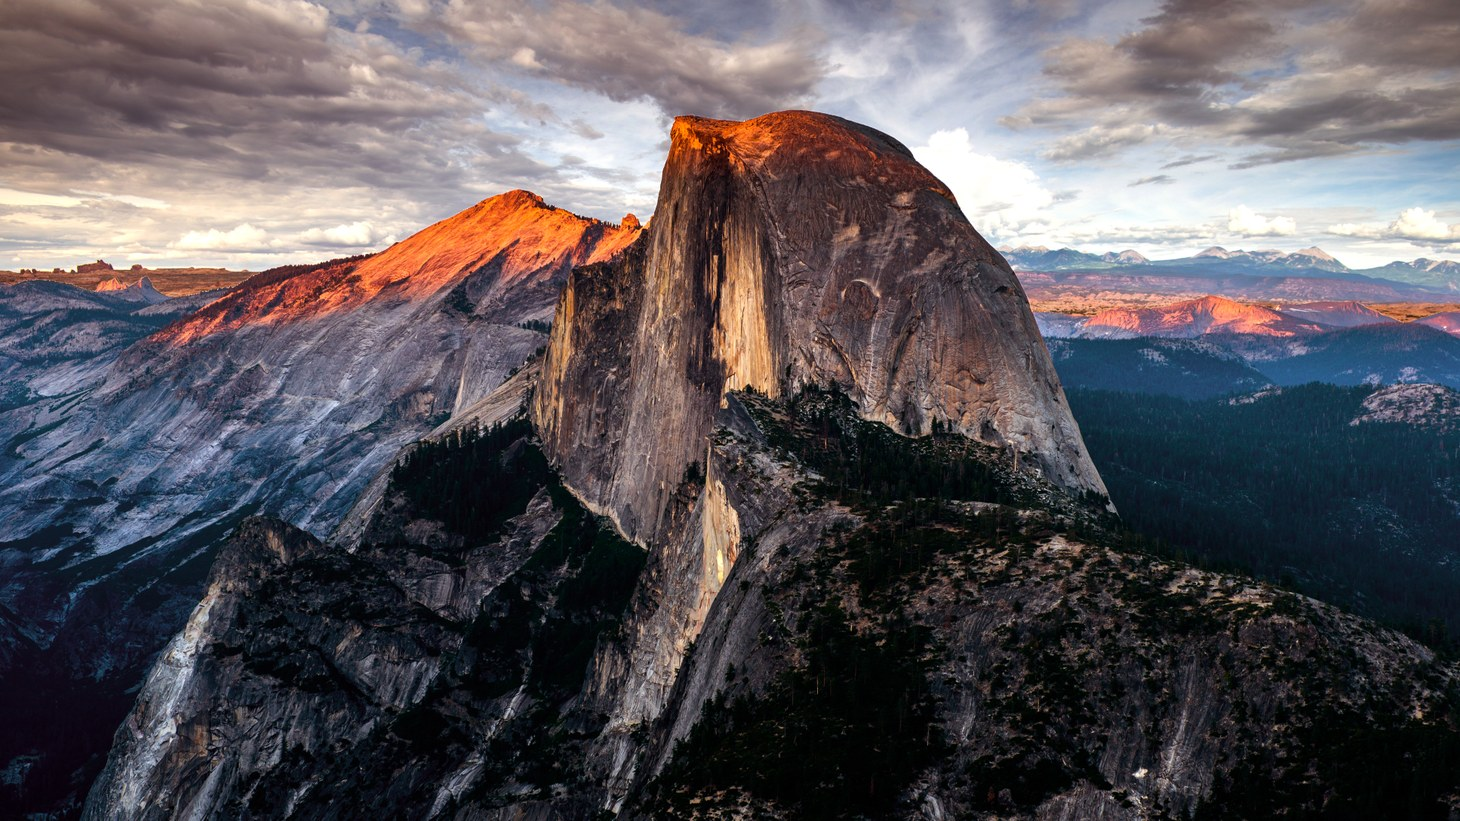 Half Dome is a distinctly shaped granite rock formation in Yosemite National Park.